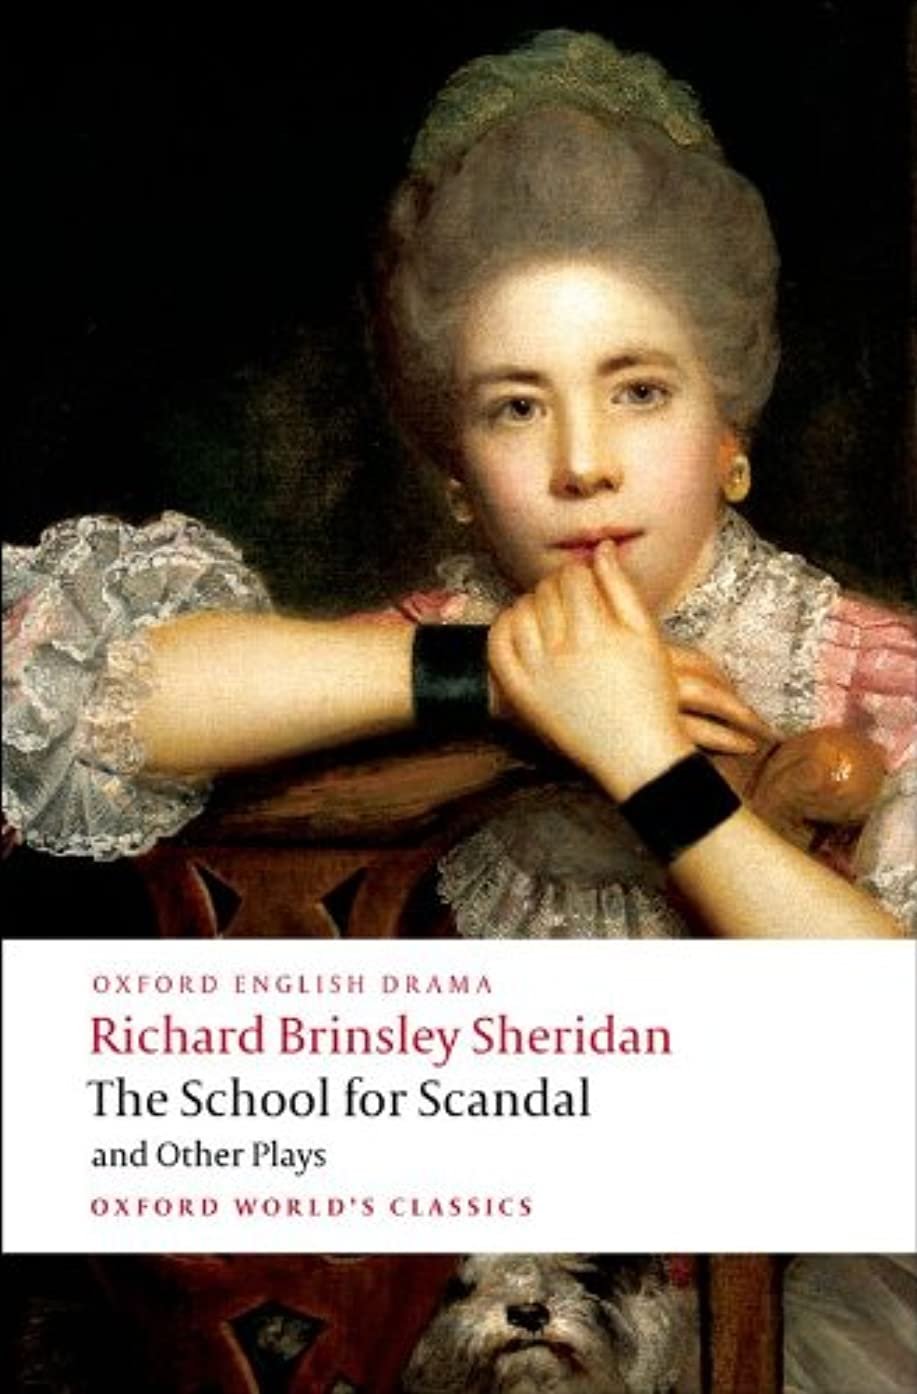 エロチックセンブランス達成するThe School for Scandal and Other Plays (Oxford World's Classics) (English Edition)